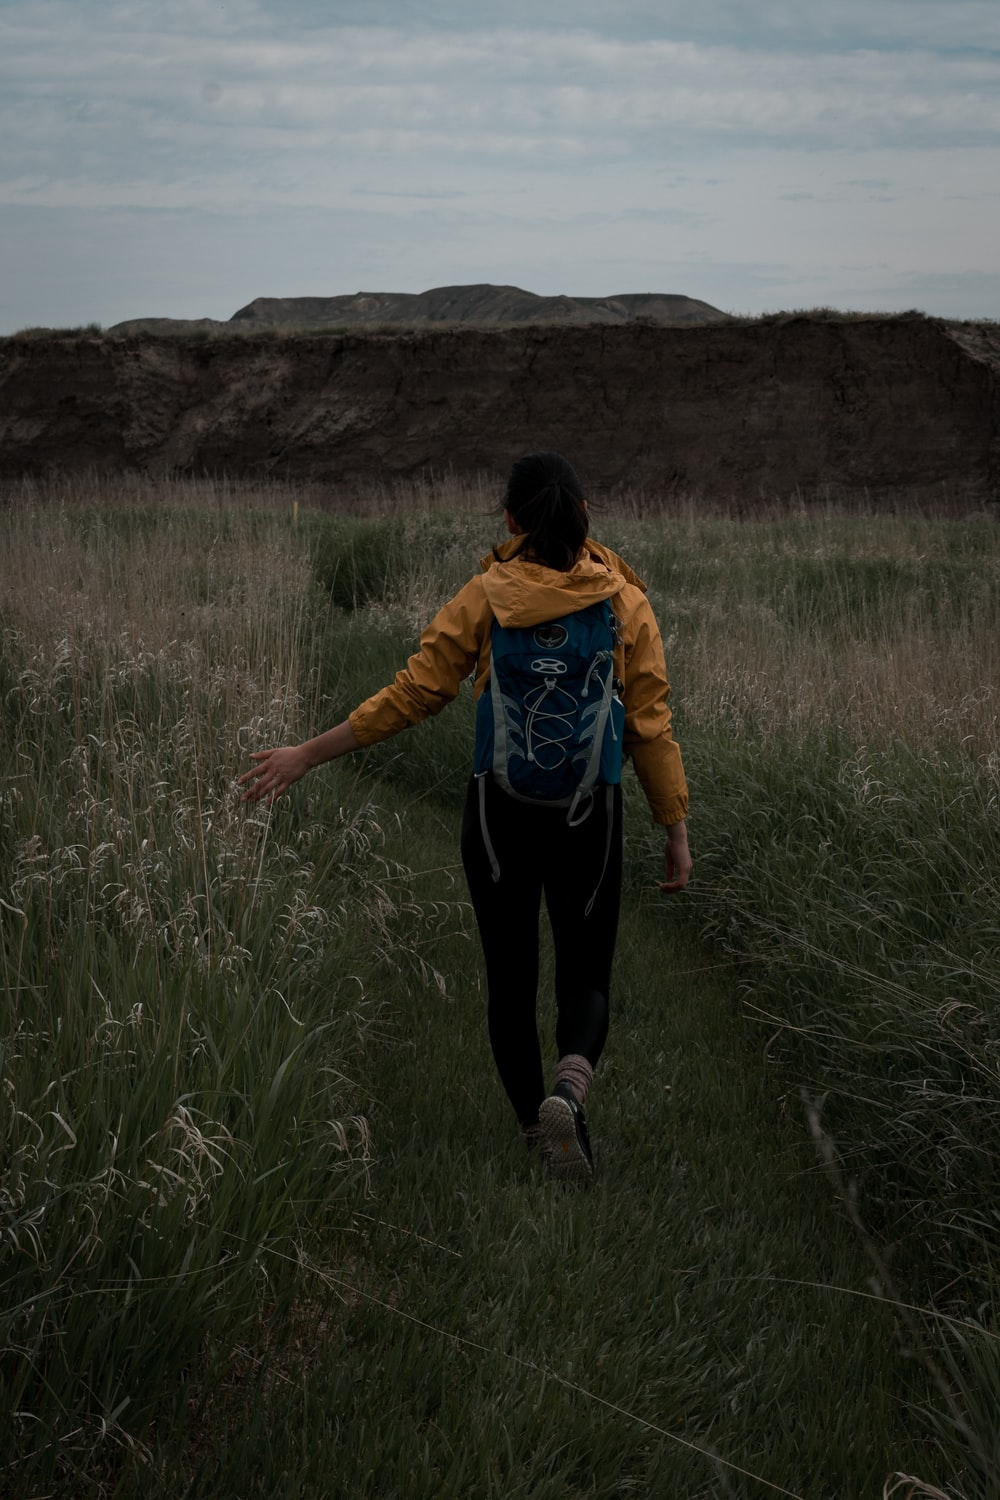 woman in yellow jacket and black pants walking on green grass field during daytime